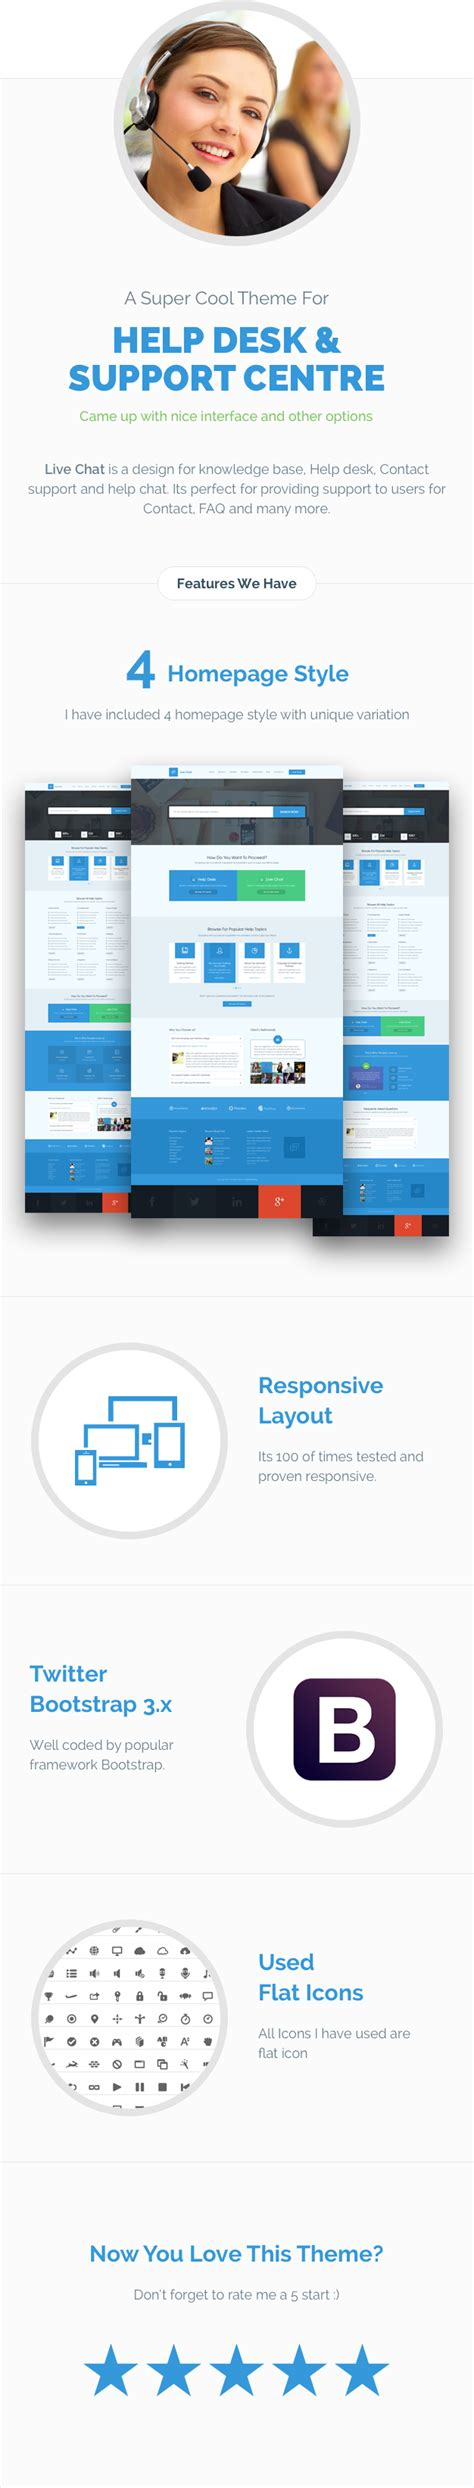 Live Chat A Responsive Help Desk Support Template Site Templates Template Help Live Chat